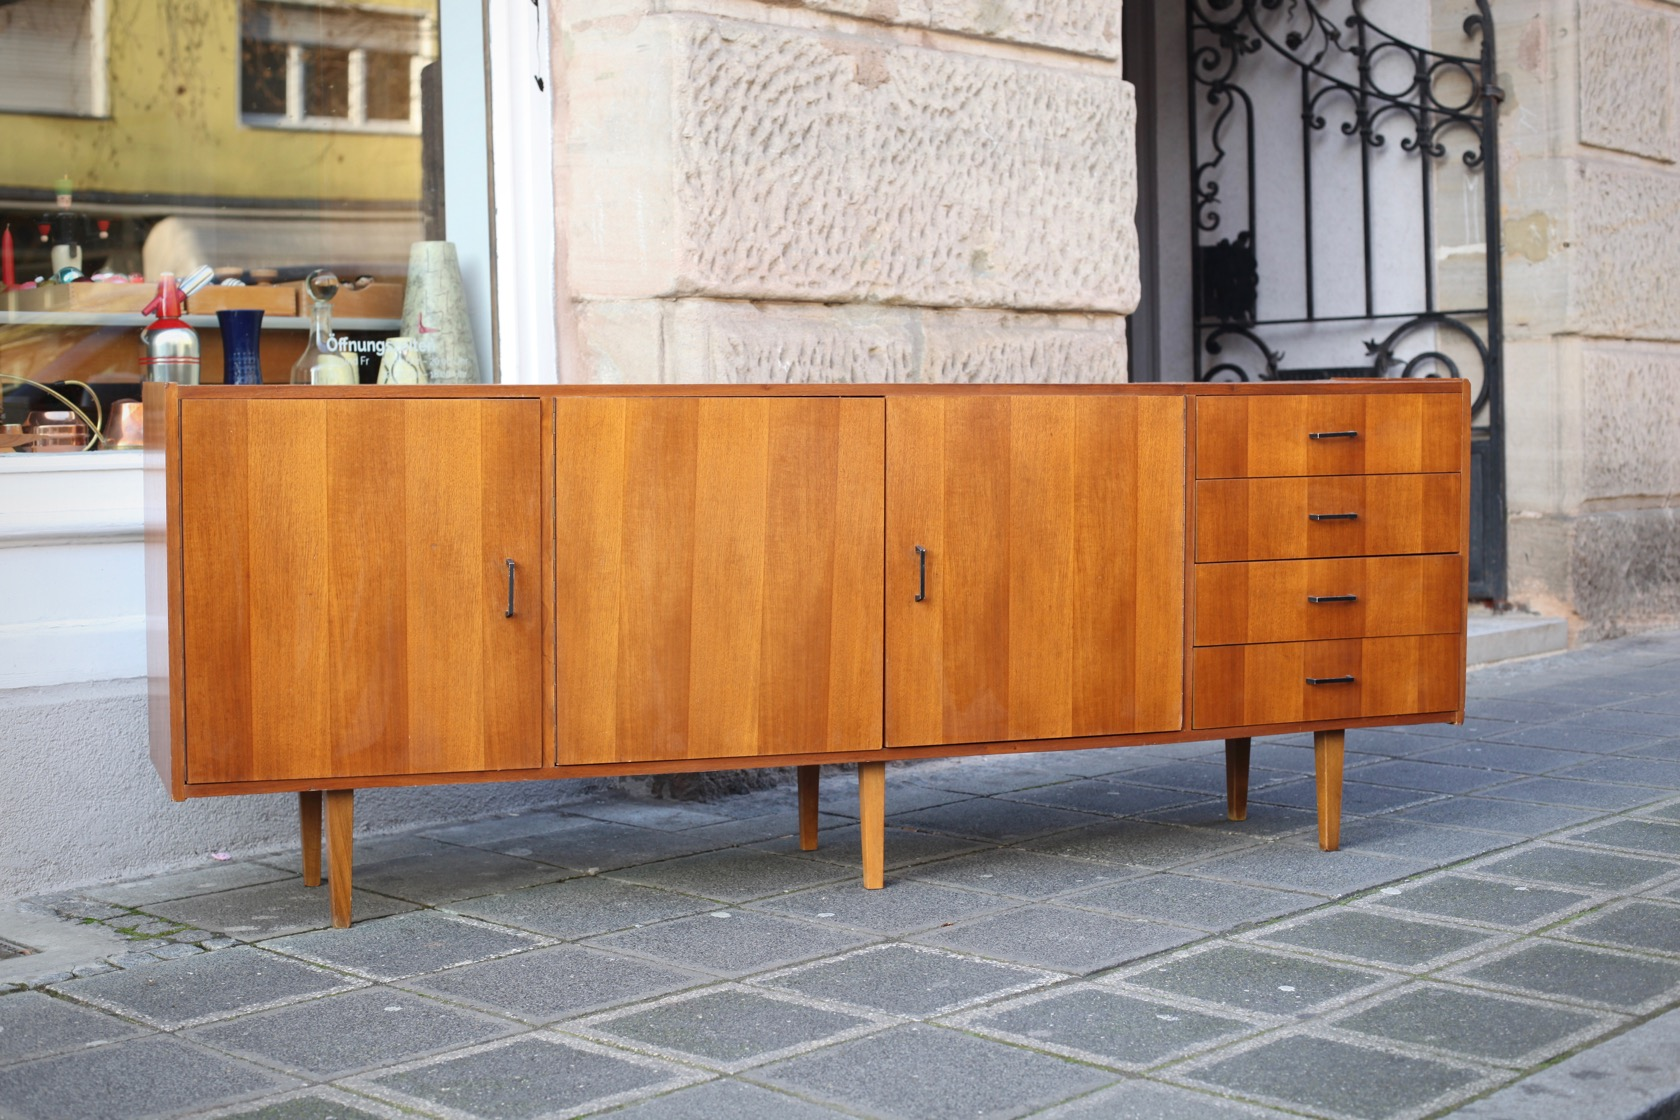 sideboard aus den 50er jahren raumwunder vintage wohnen in n rnberg. Black Bedroom Furniture Sets. Home Design Ideas